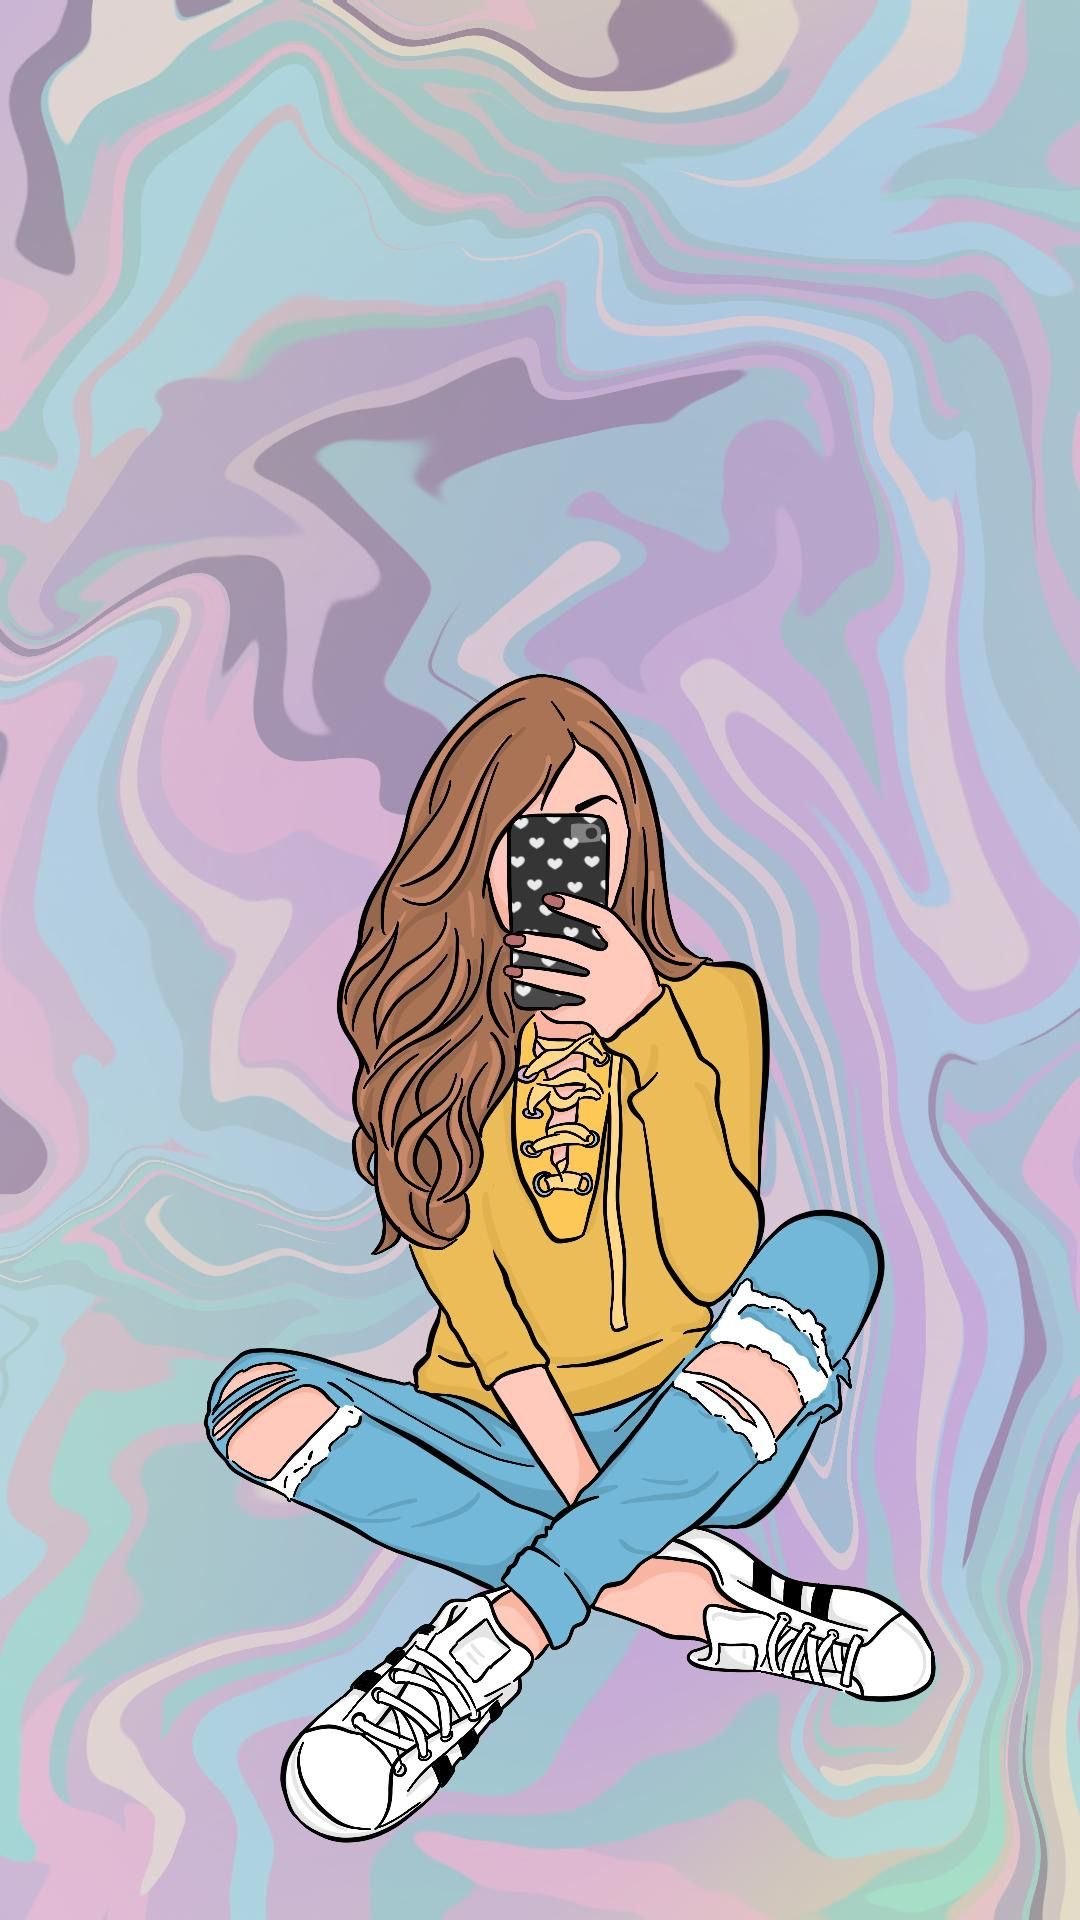 Pin by Abigail van Niekerk on ᗩᑎIᗰᗩTIOᑎ aesthetic (With